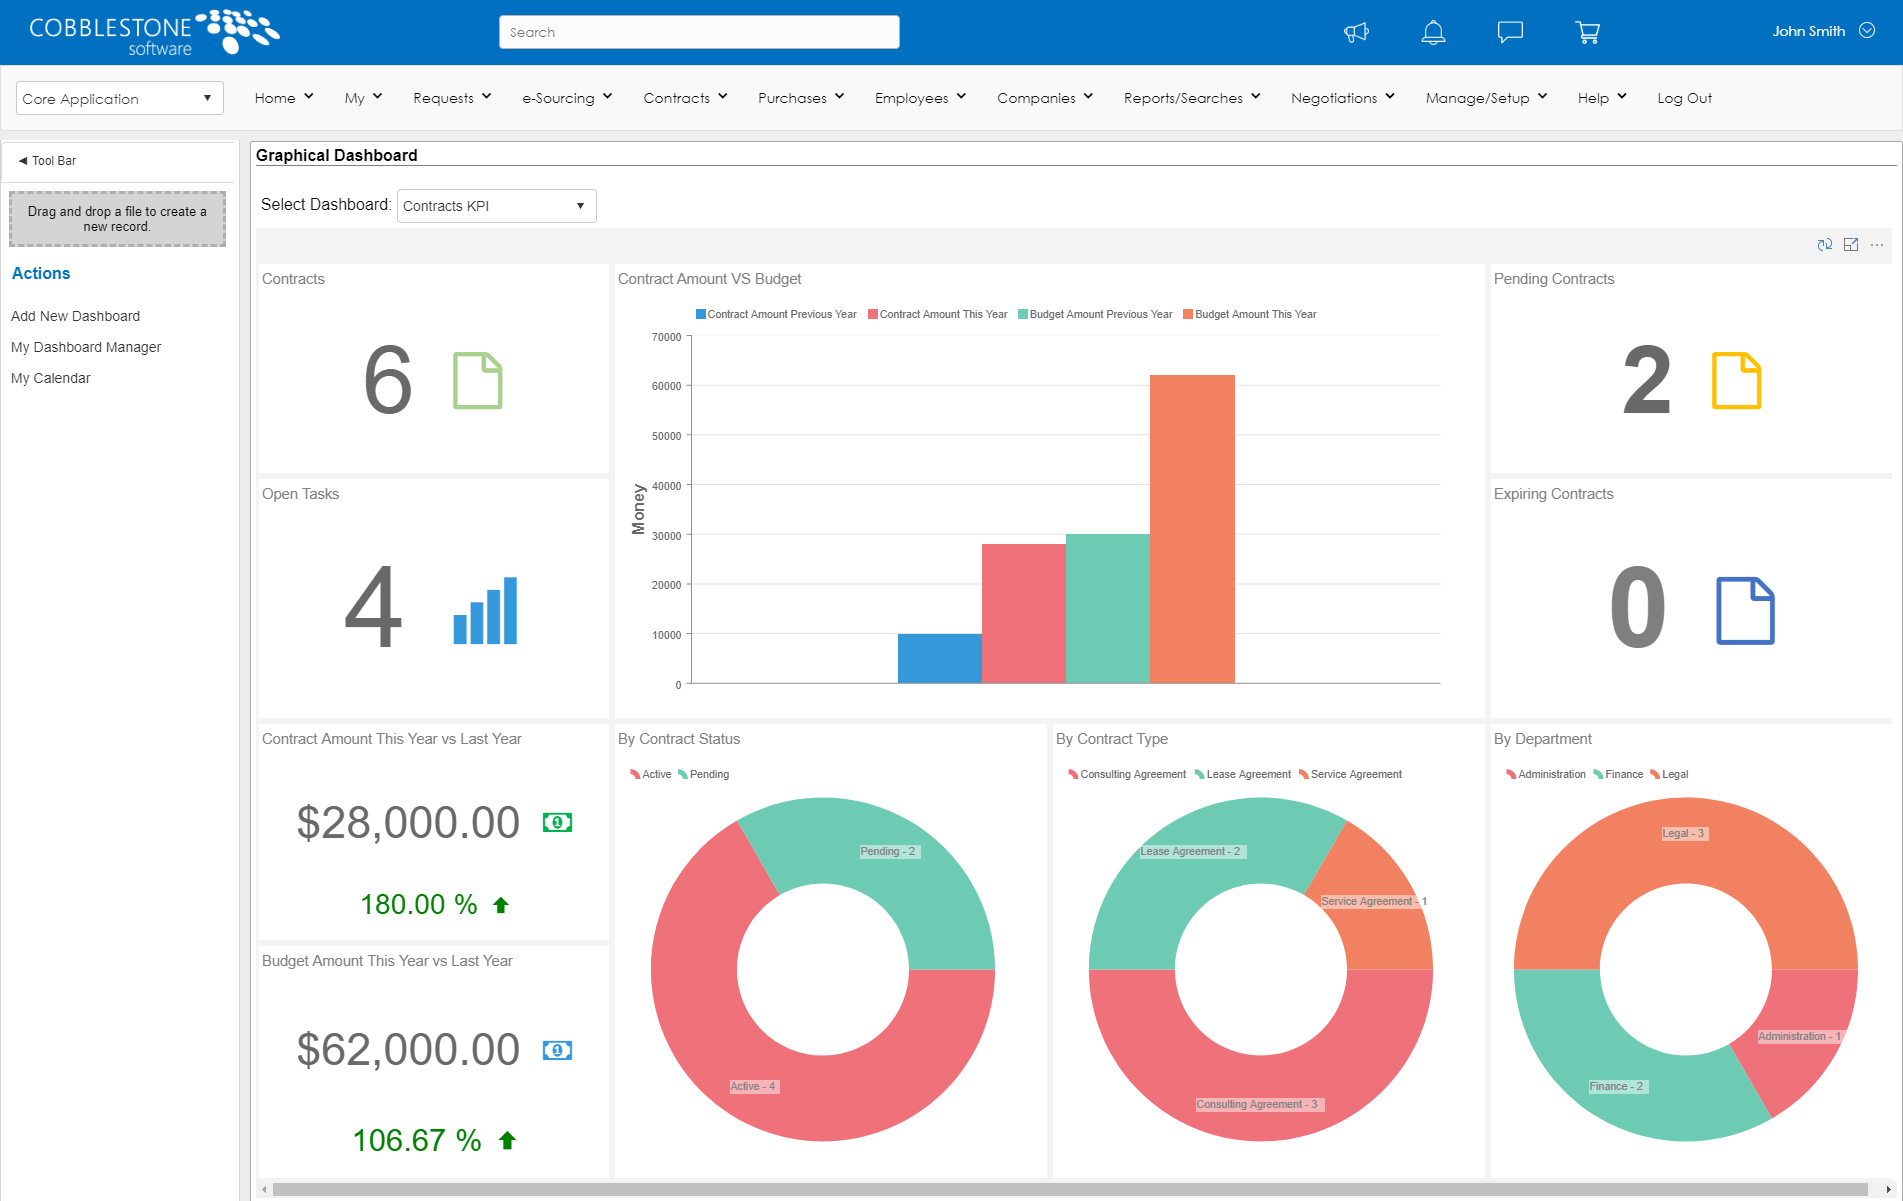 Contract Insight® graphical dashboards